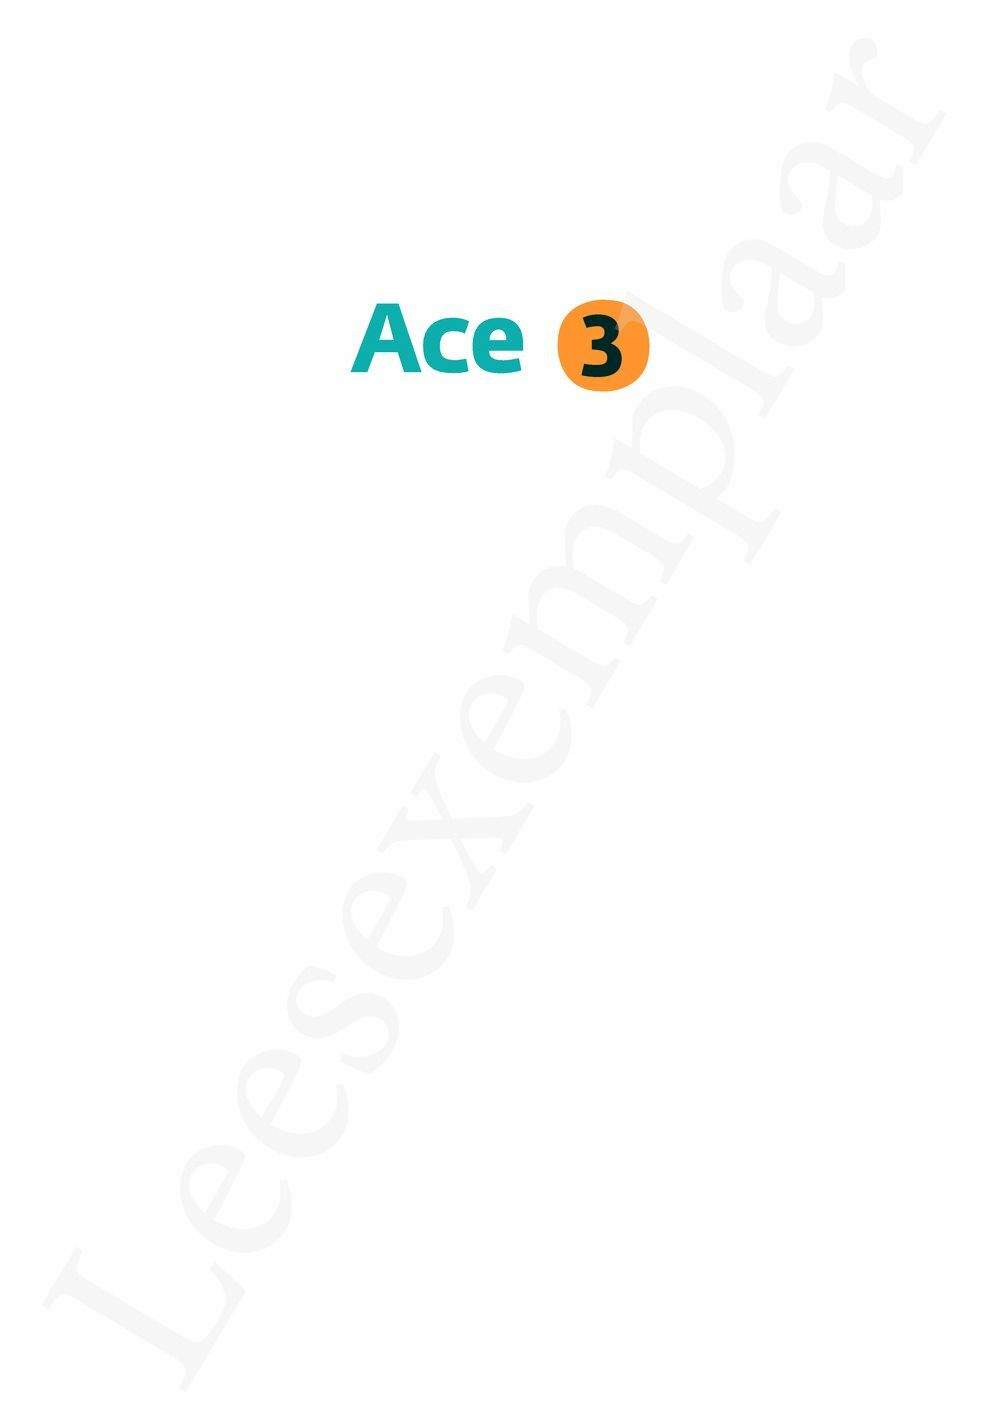 Preview: Ace 3 leerwerkboek